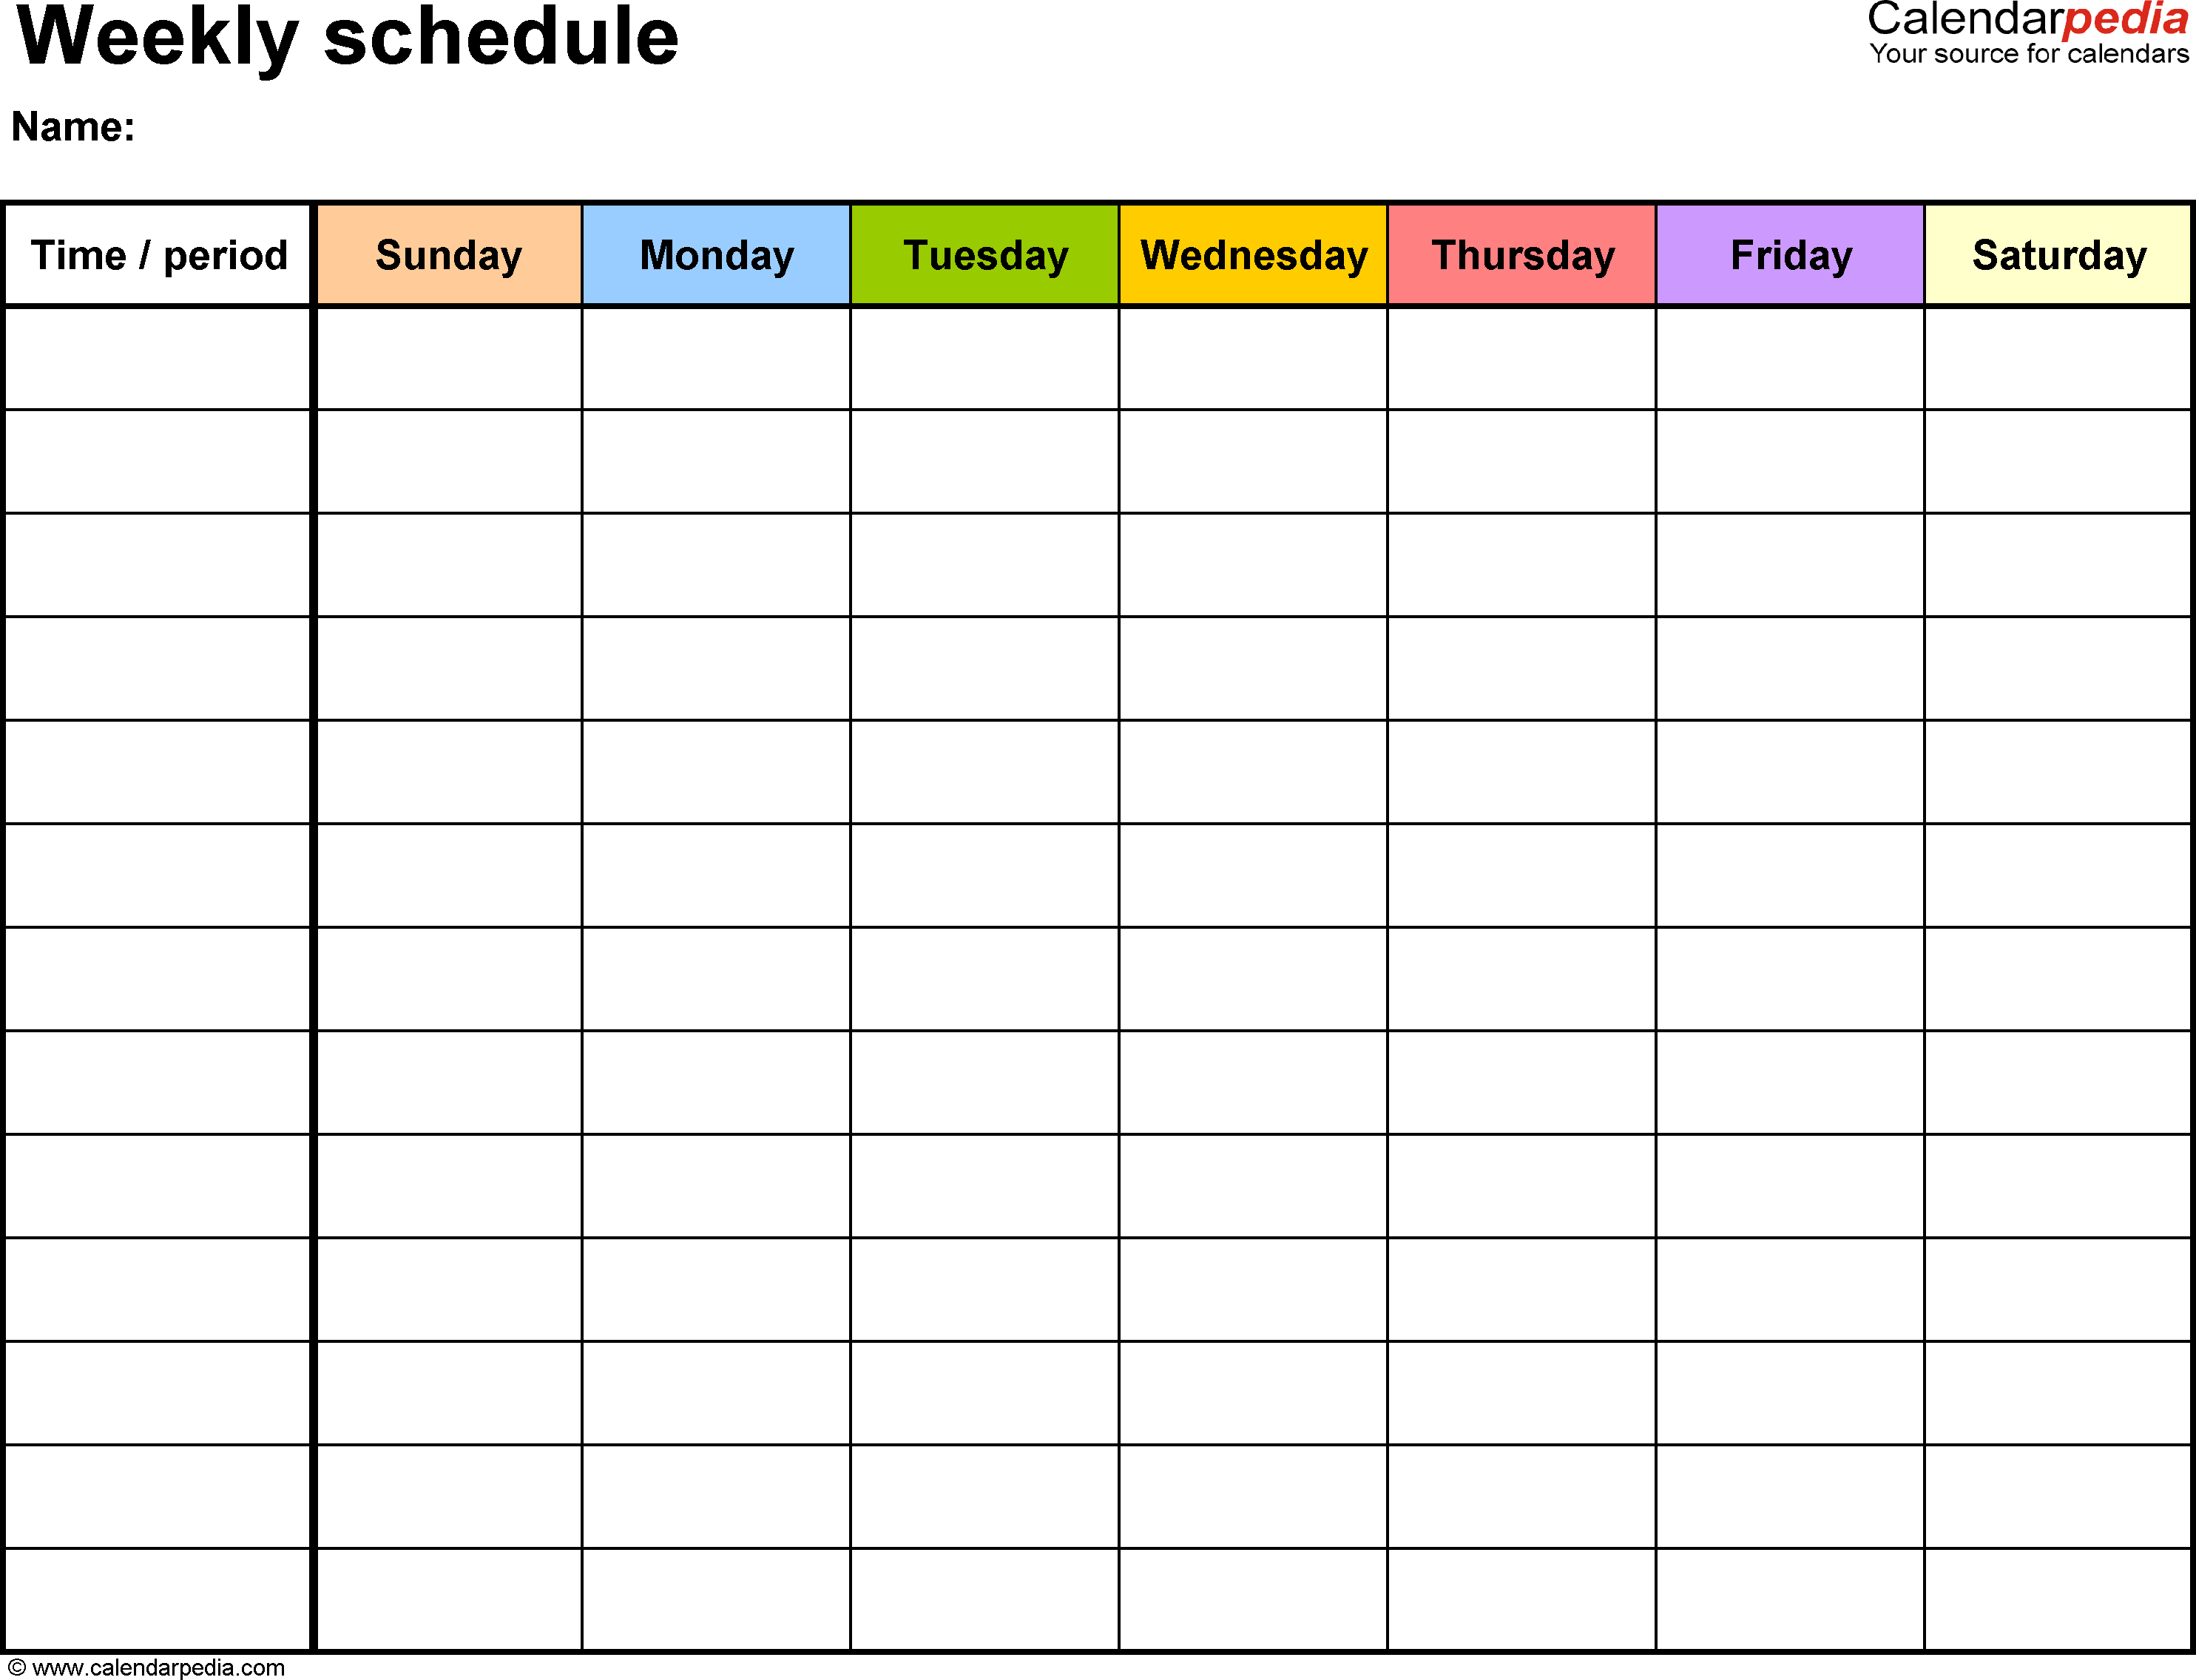 Daily Schedule Calendar Template